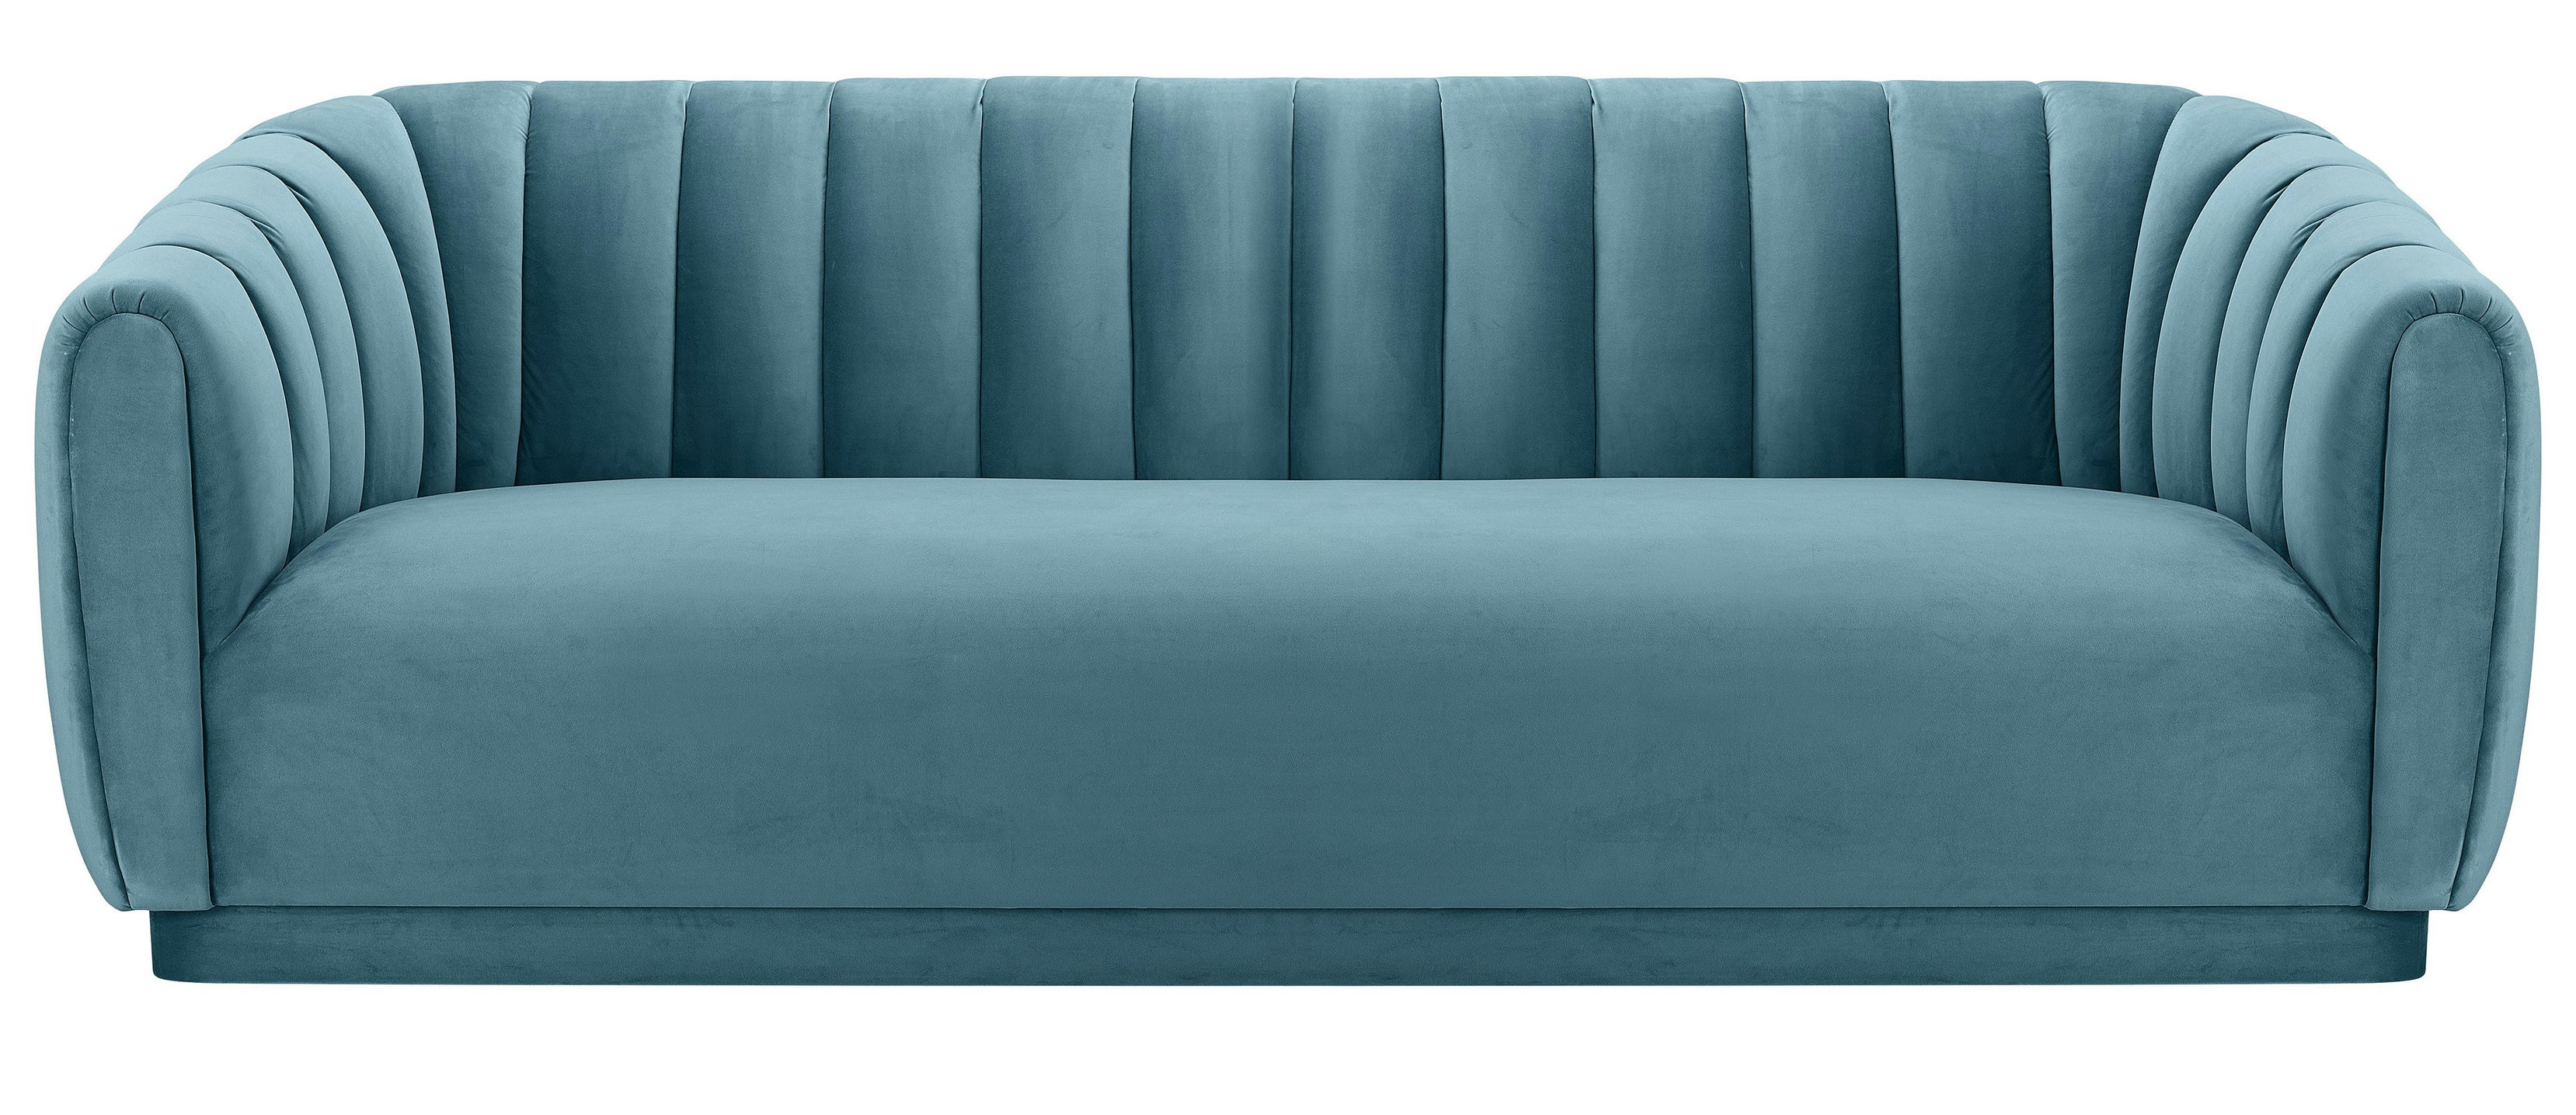 Marissa Velvet Sofa, Sea Blue Pertaining To Marissa Sofa Chairs (Image 22 of 25)